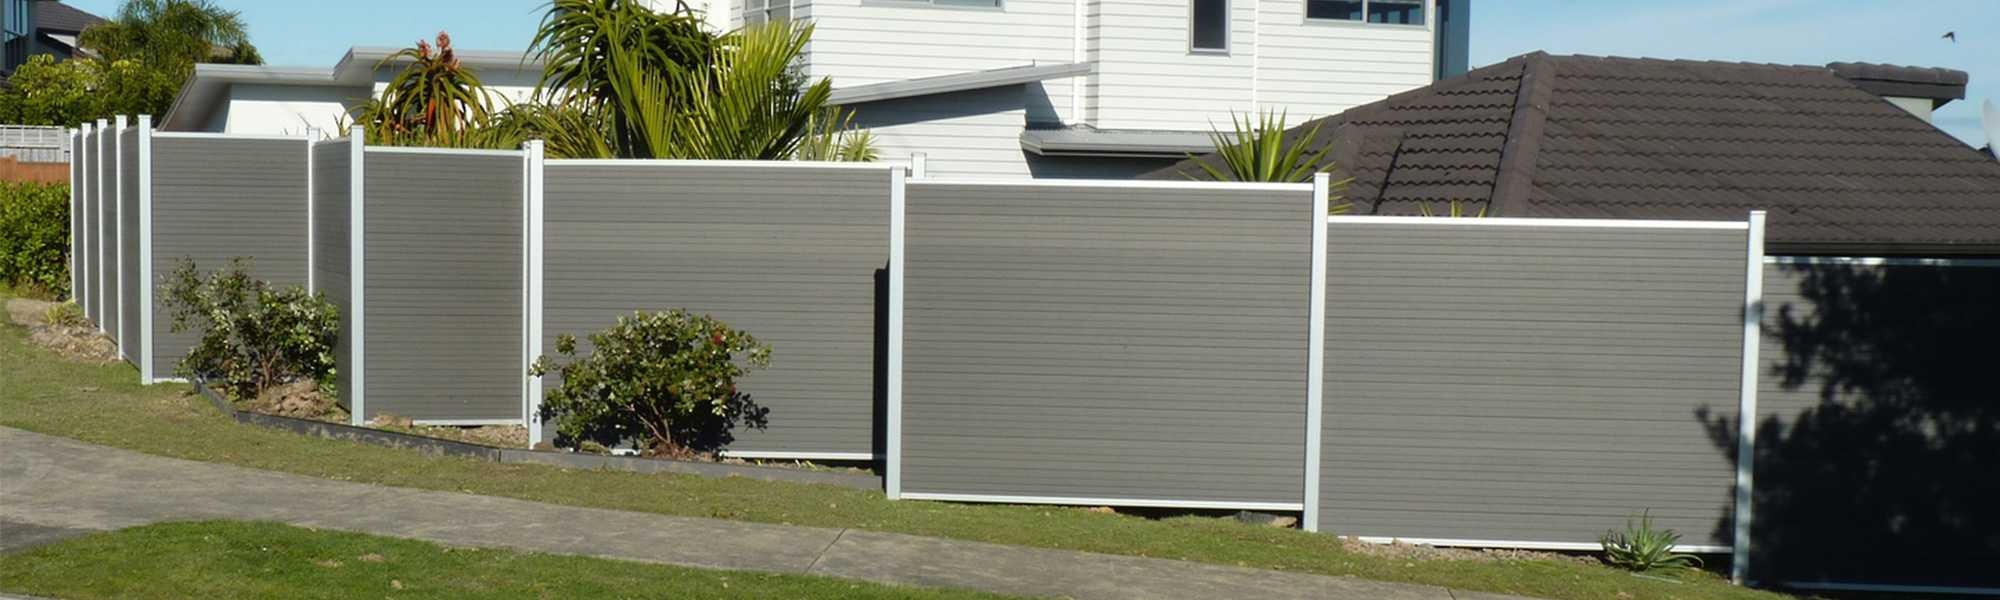 Weather resistant wpc fence manufacturers